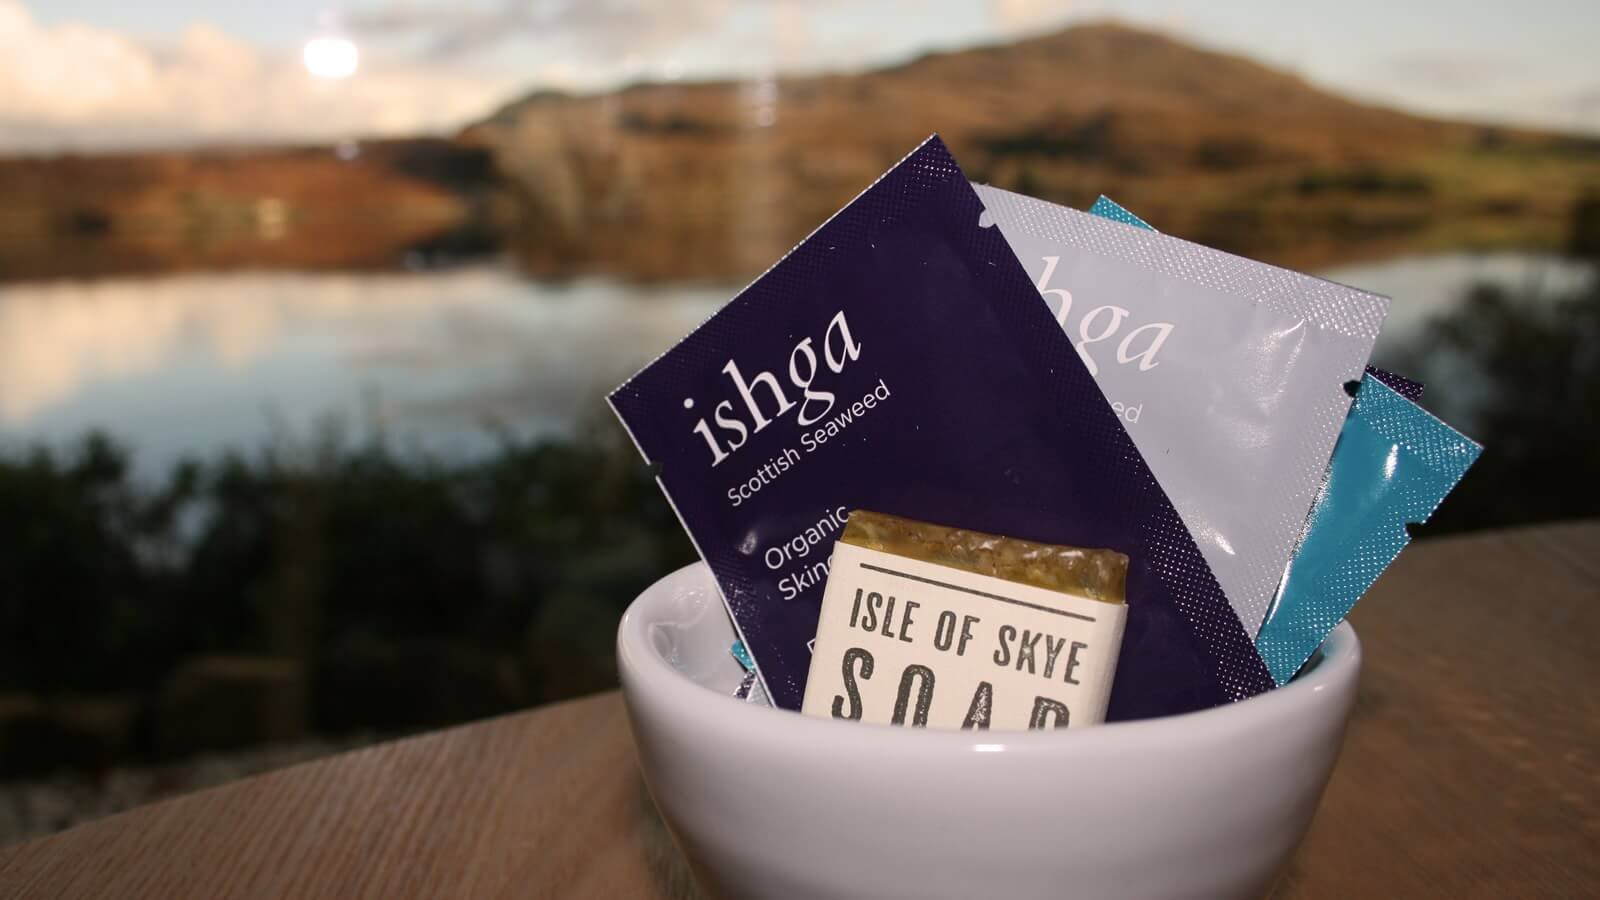 Scottish Seaweed Toiletries